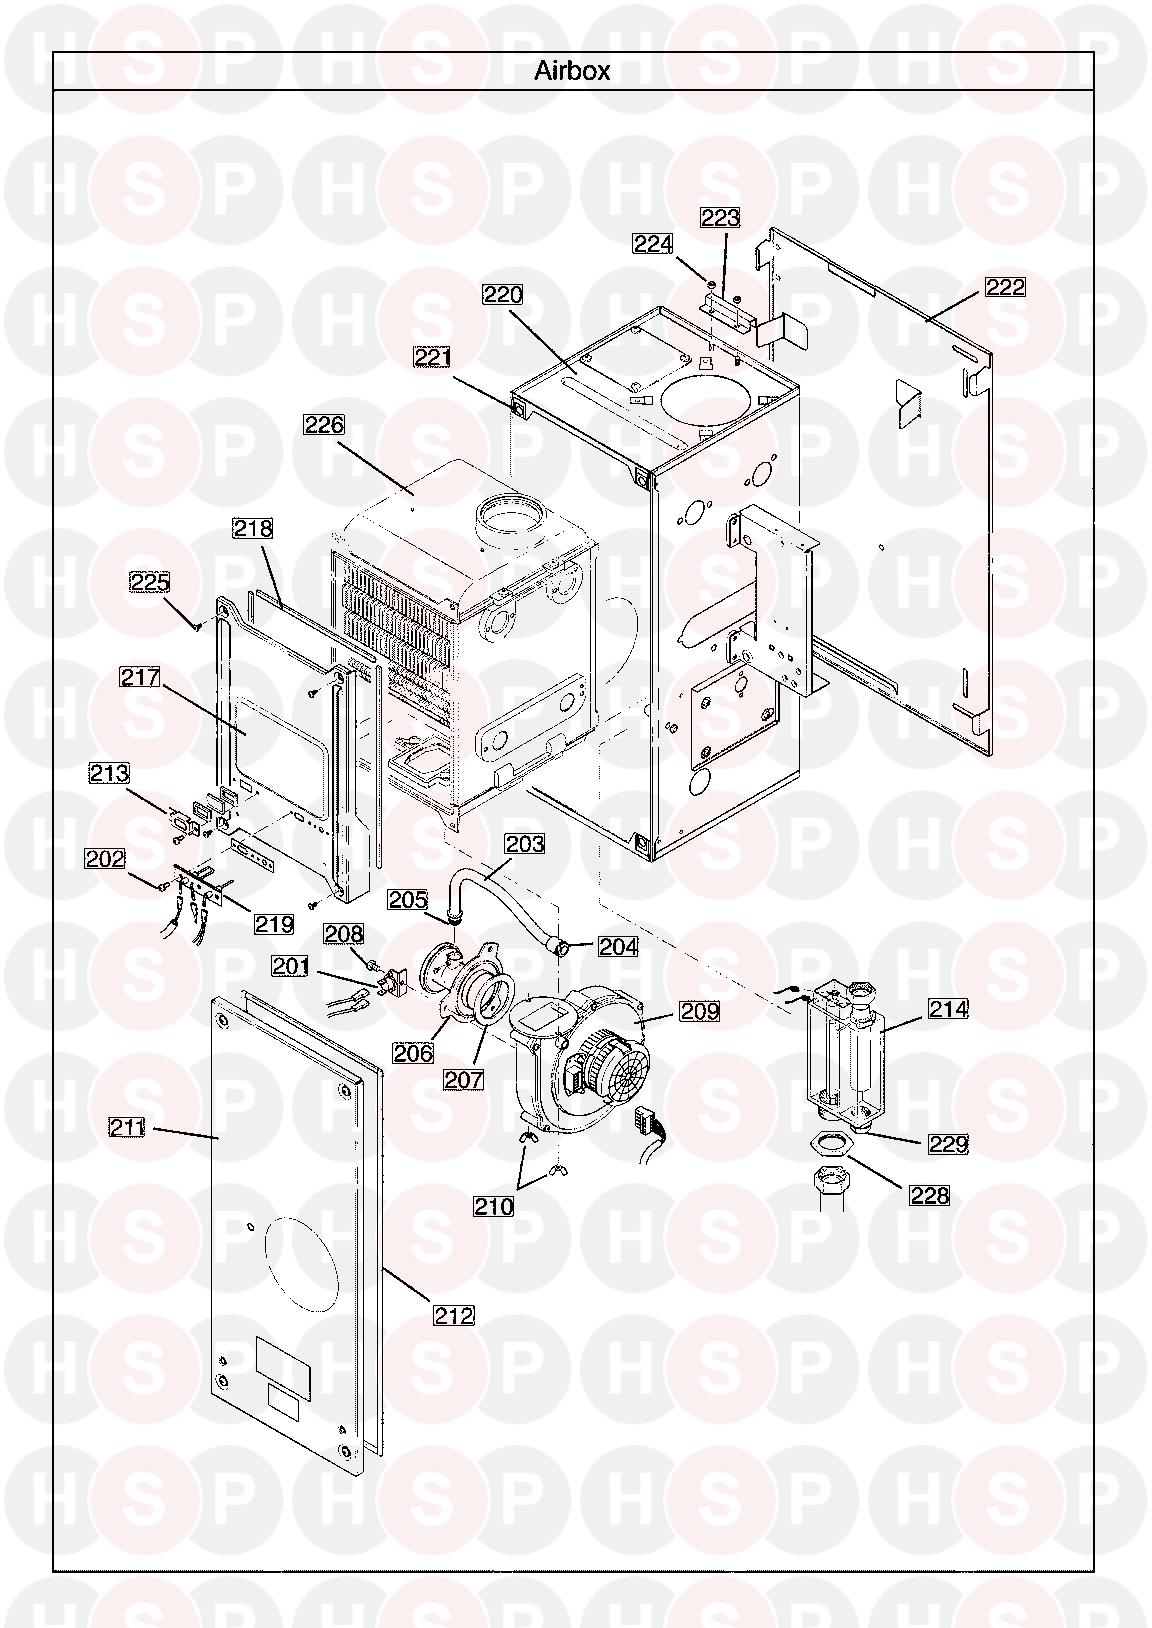 main 15 he a heat only appliance diagram  air box